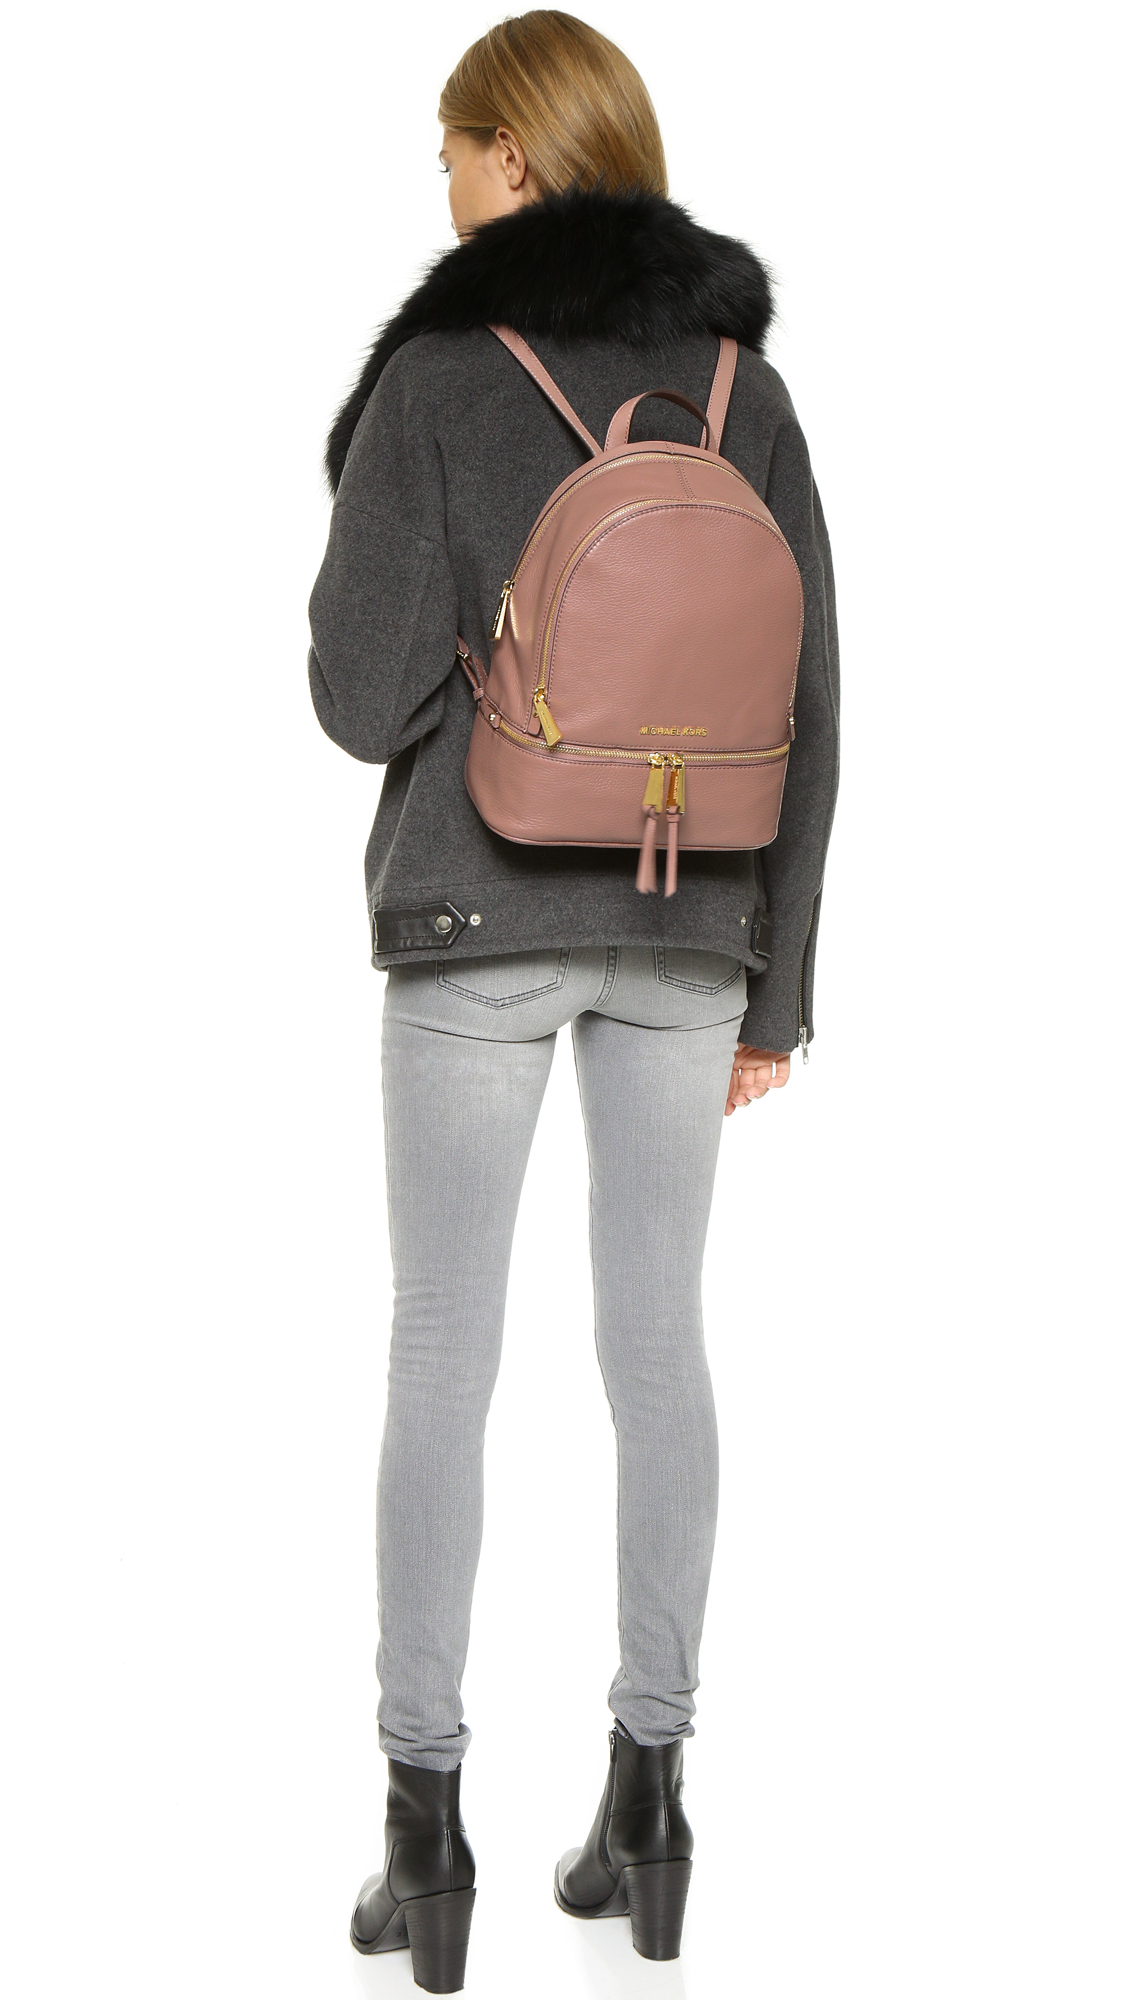 b459b6abe31f Lyst - MICHAEL Michael Kors Rhea Backpack - Navy in Pink